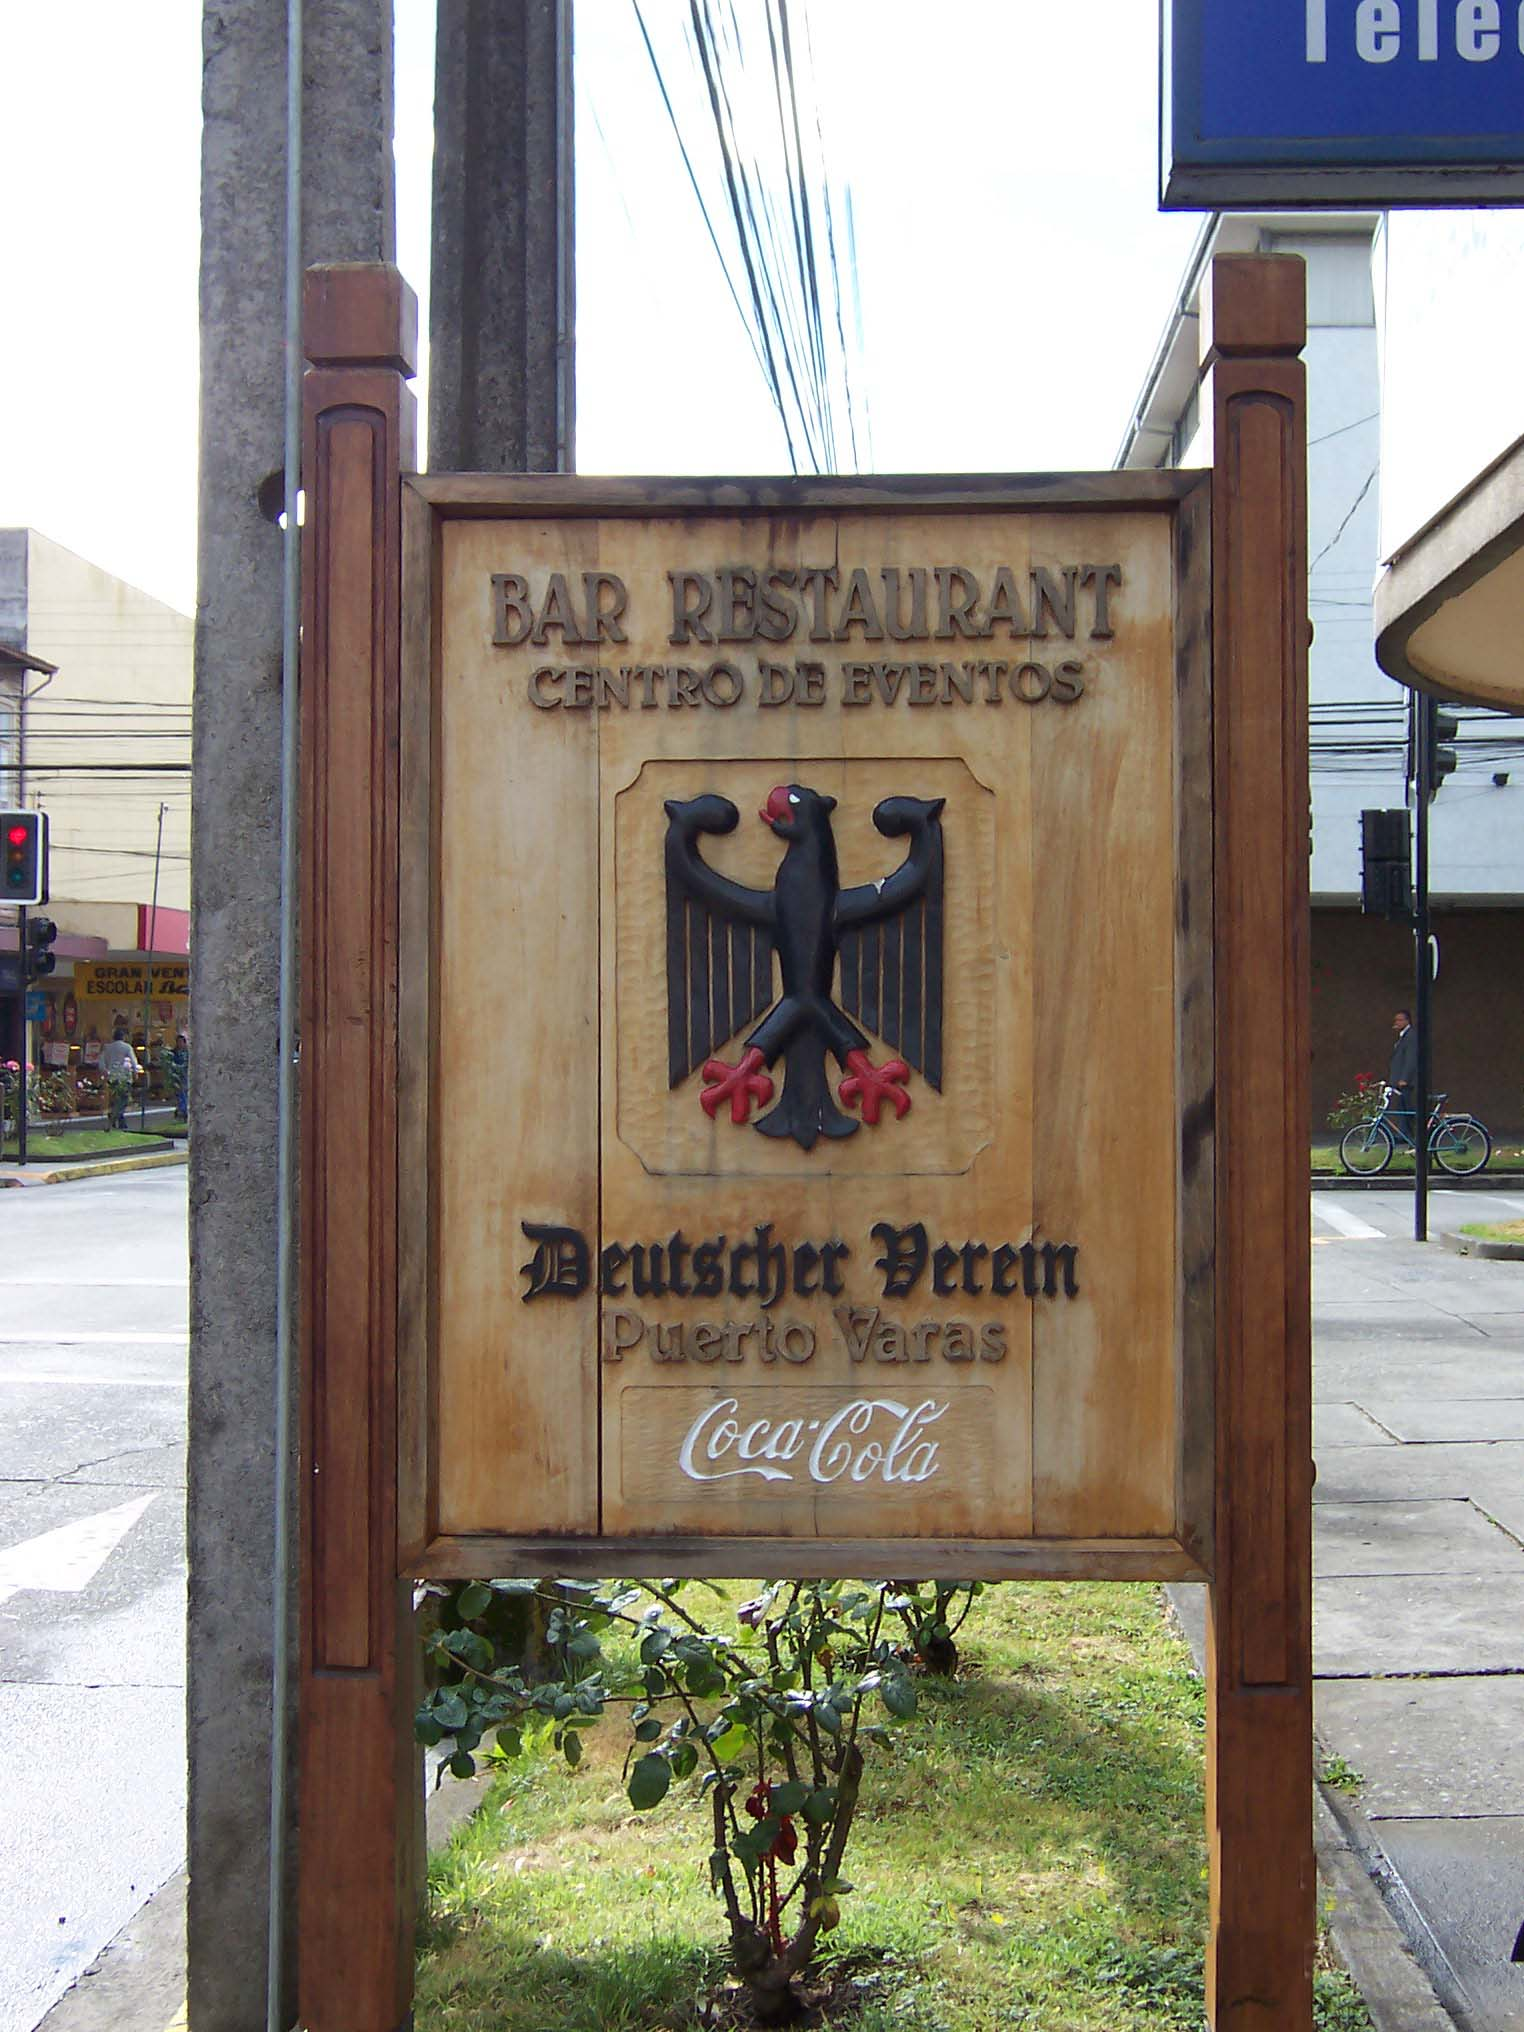 Wood-carved street sign beckoning diners to the Club Alemán's bar and restaurant. The German eagle greets Atlanta's global beverage in South America